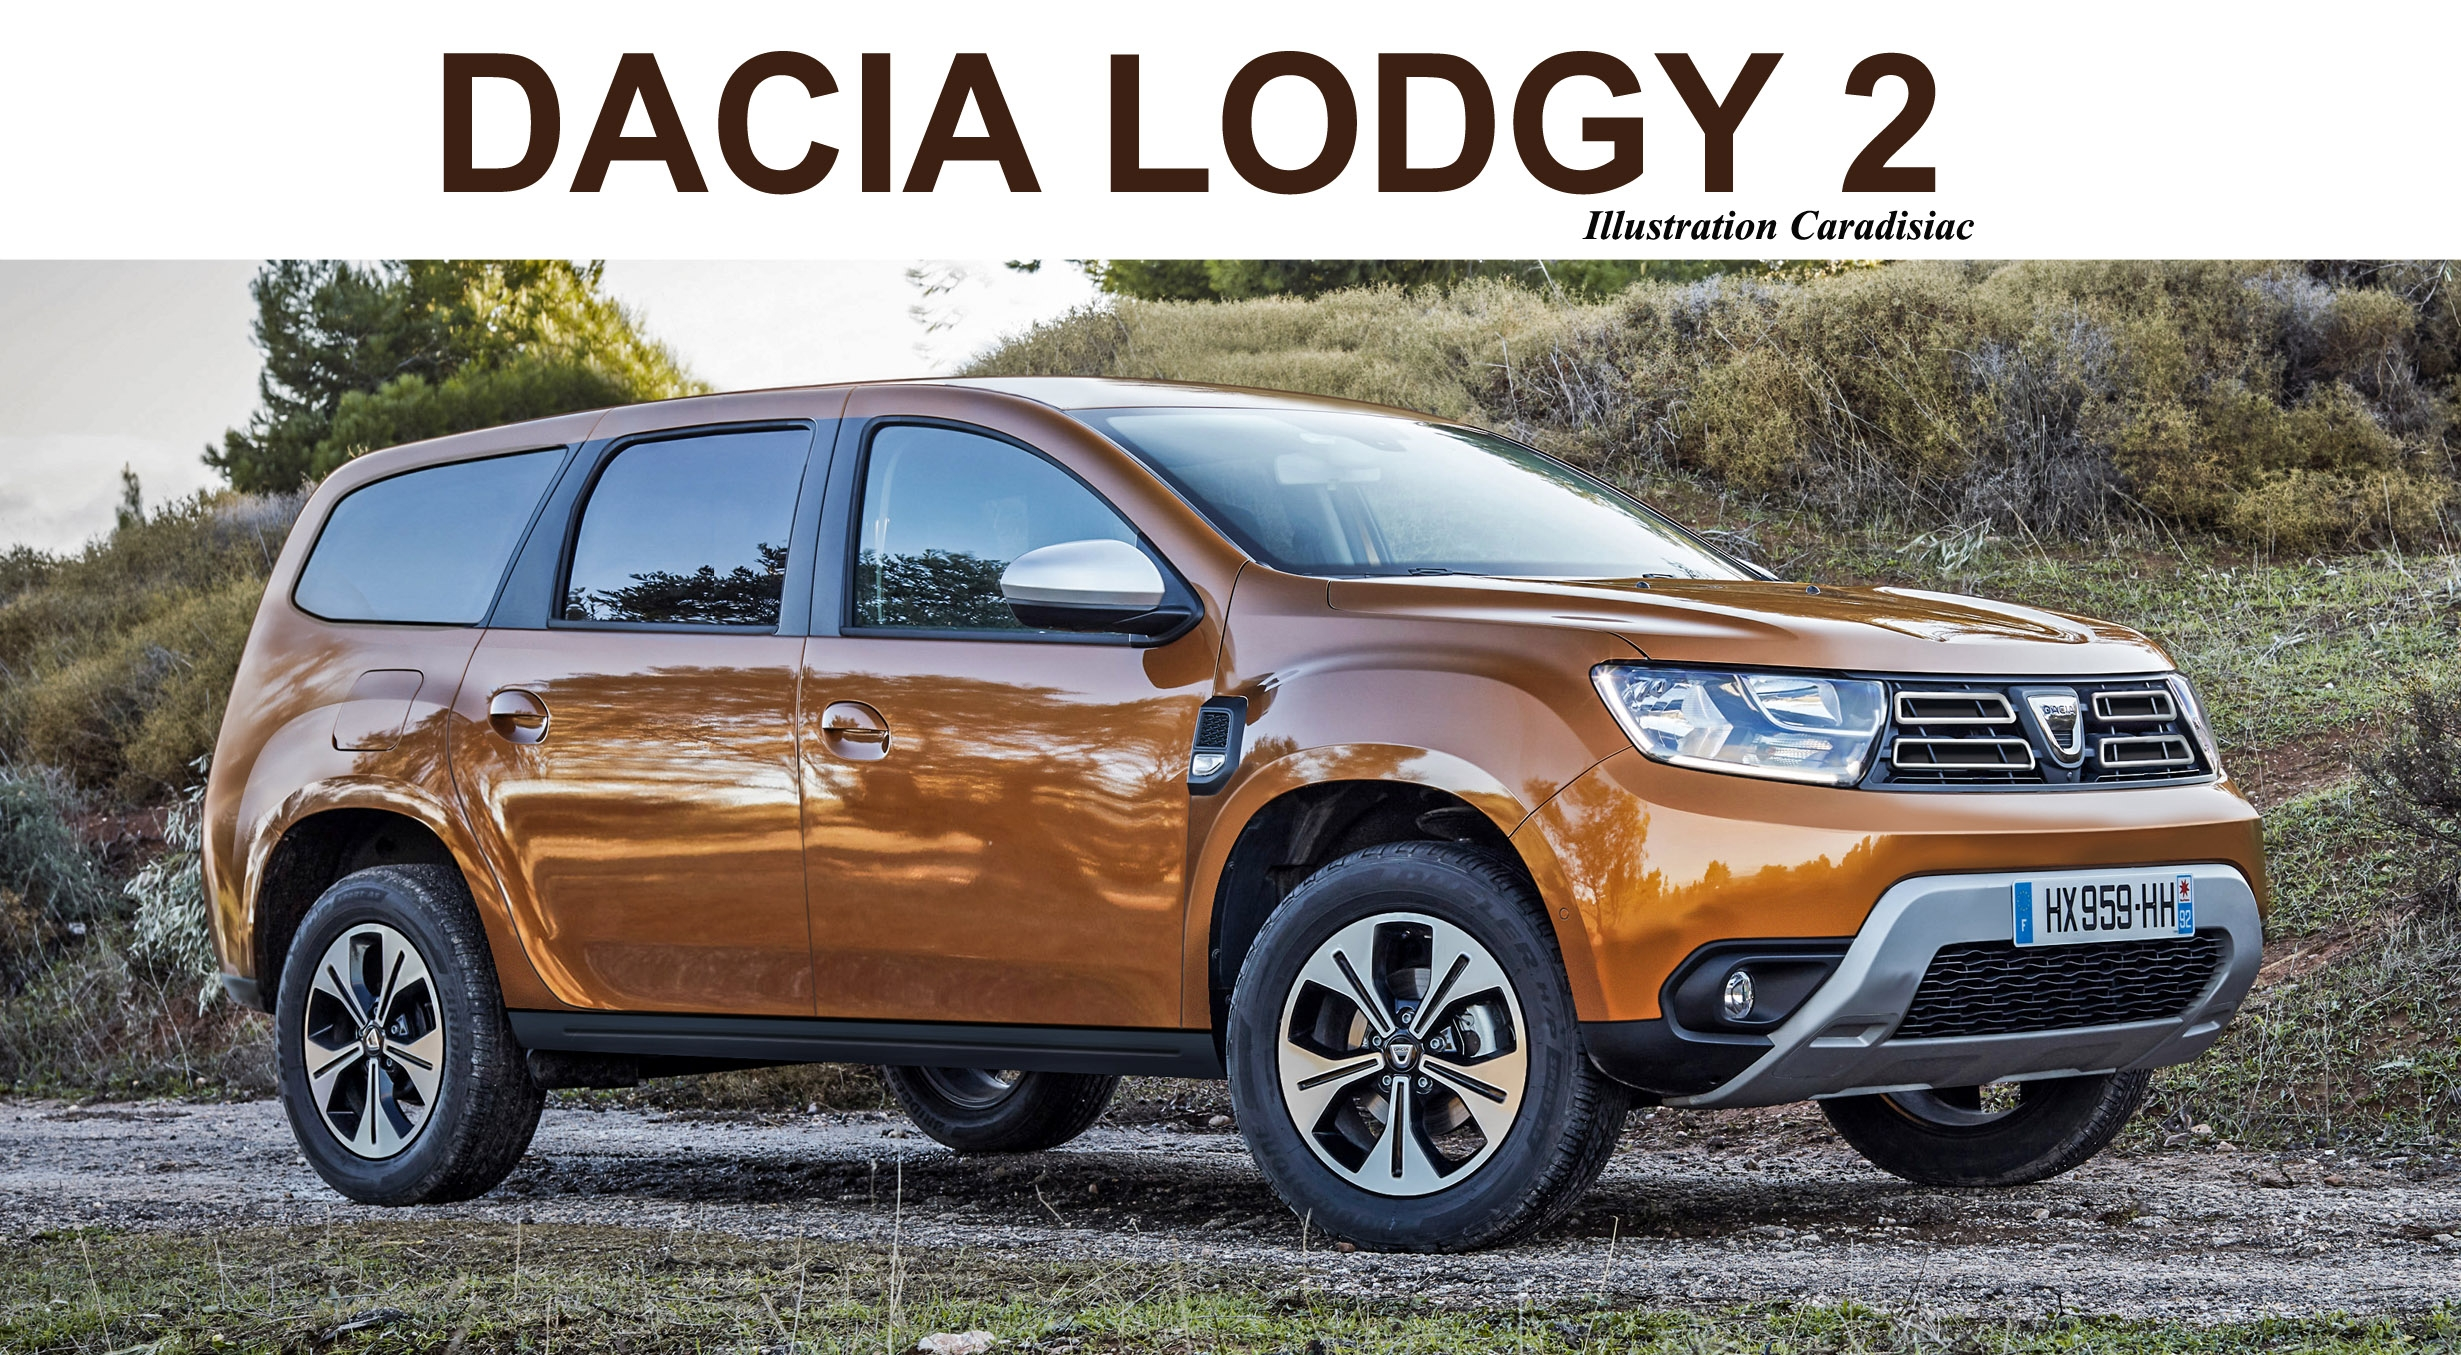 un nouveau dacia lodgy pour 2020. Black Bedroom Furniture Sets. Home Design Ideas